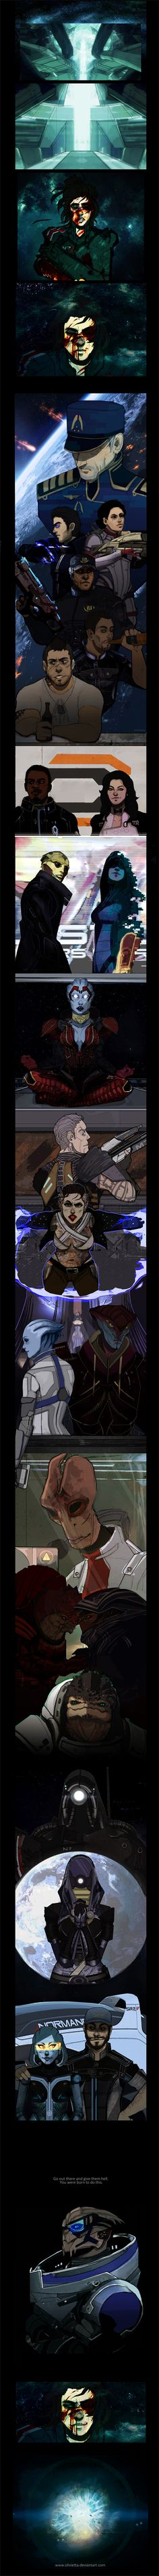 FemShep takes one last moment to reflect on her comrades & loved ones before making the ultimate sacrifice to save the galaxy. by ~Olivietta on deviantART THEM FEELS. ;_;